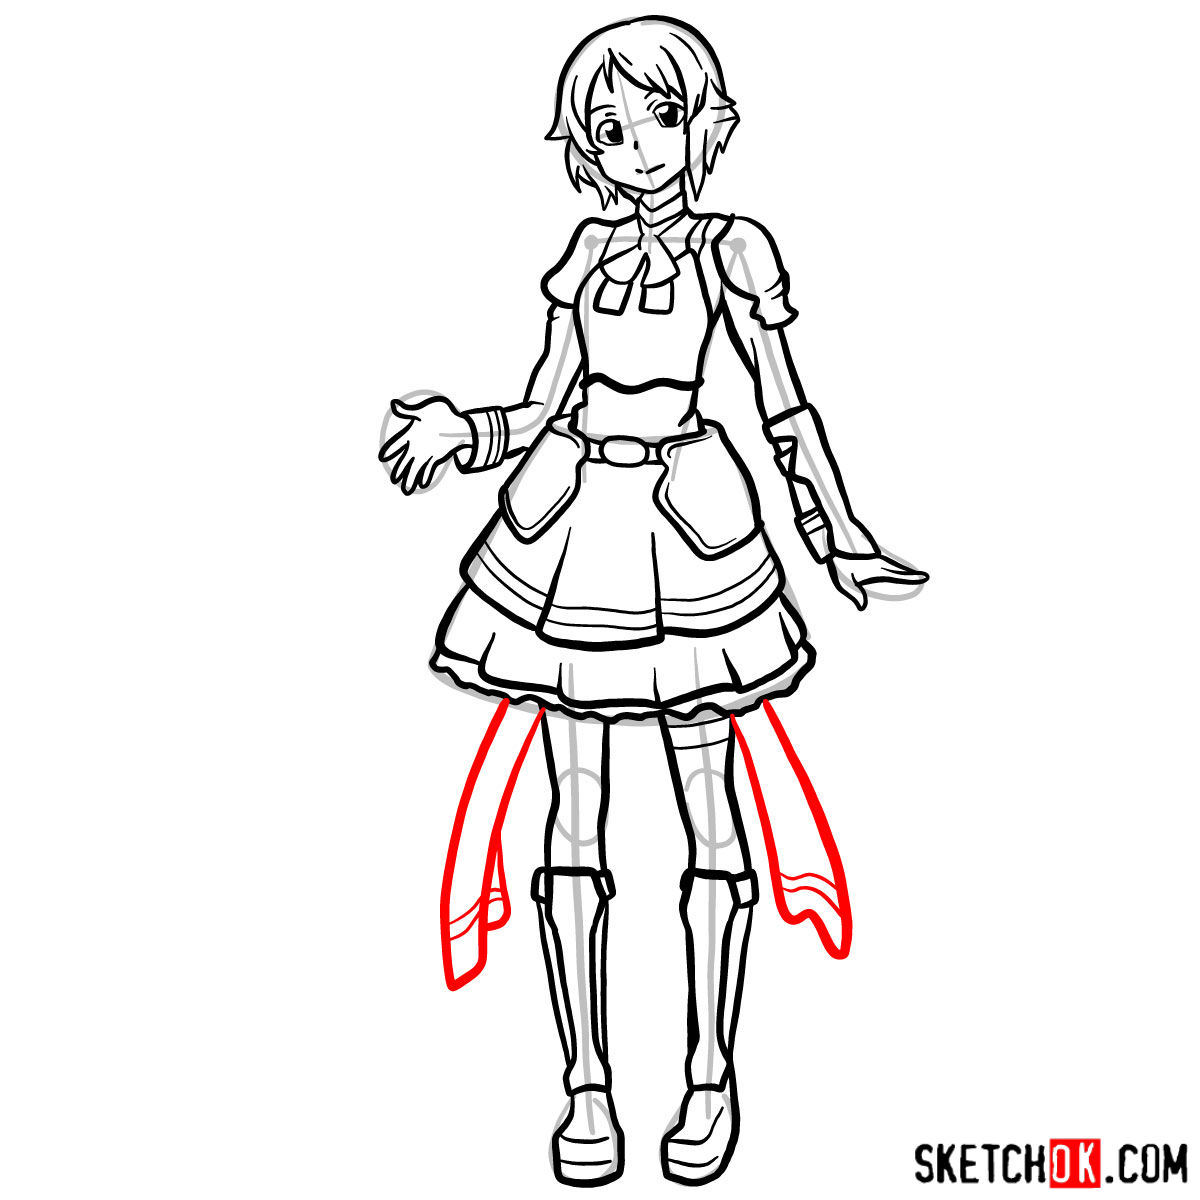 How to draw Lisbeth from Sword Art Online - step 15